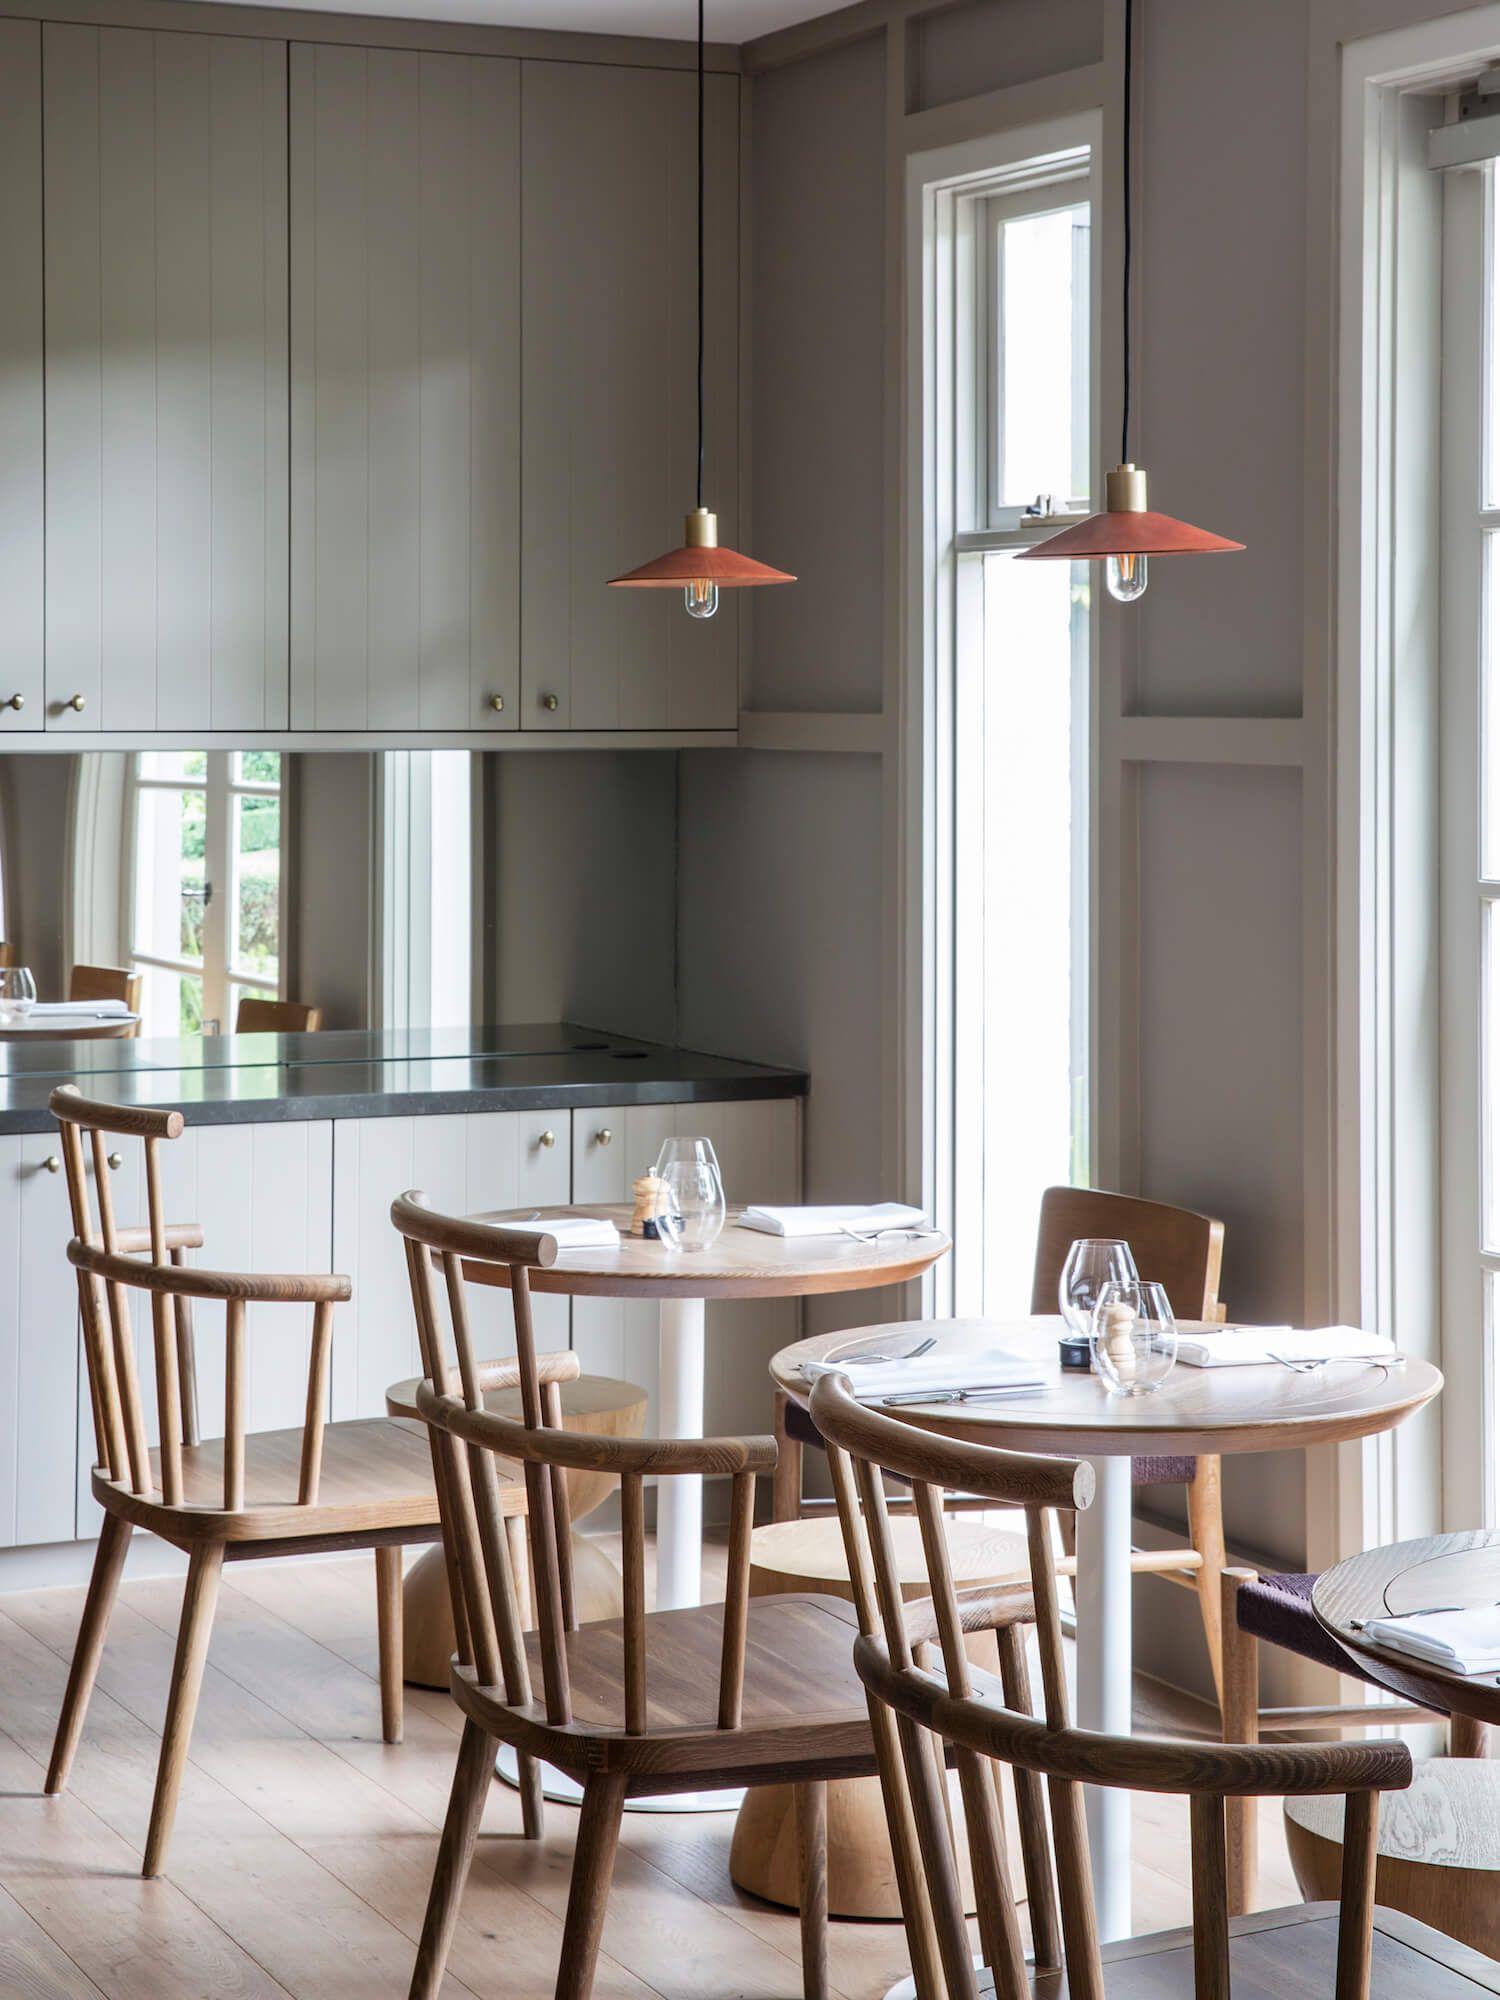 Lindenderry Hotel And Michelton Hotel | New Design From Hecker Guthrie